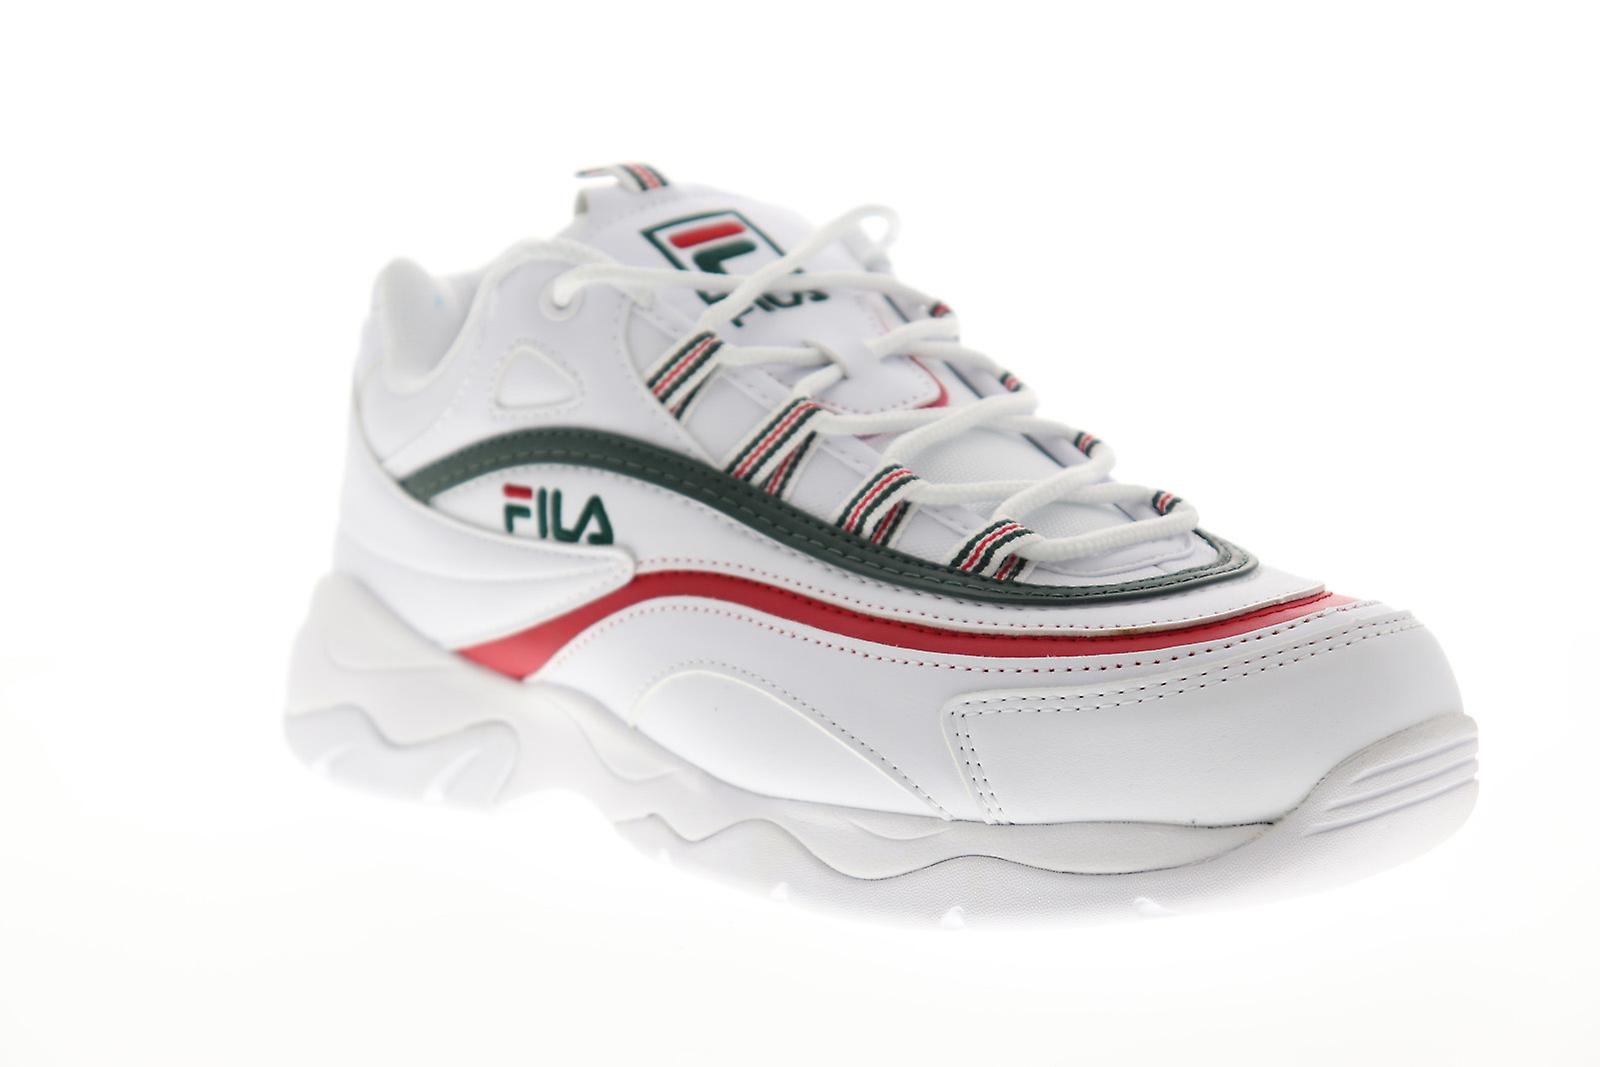 Fila Fila Ray  Mens White Leather Casual Low Top Sneakers Shoes